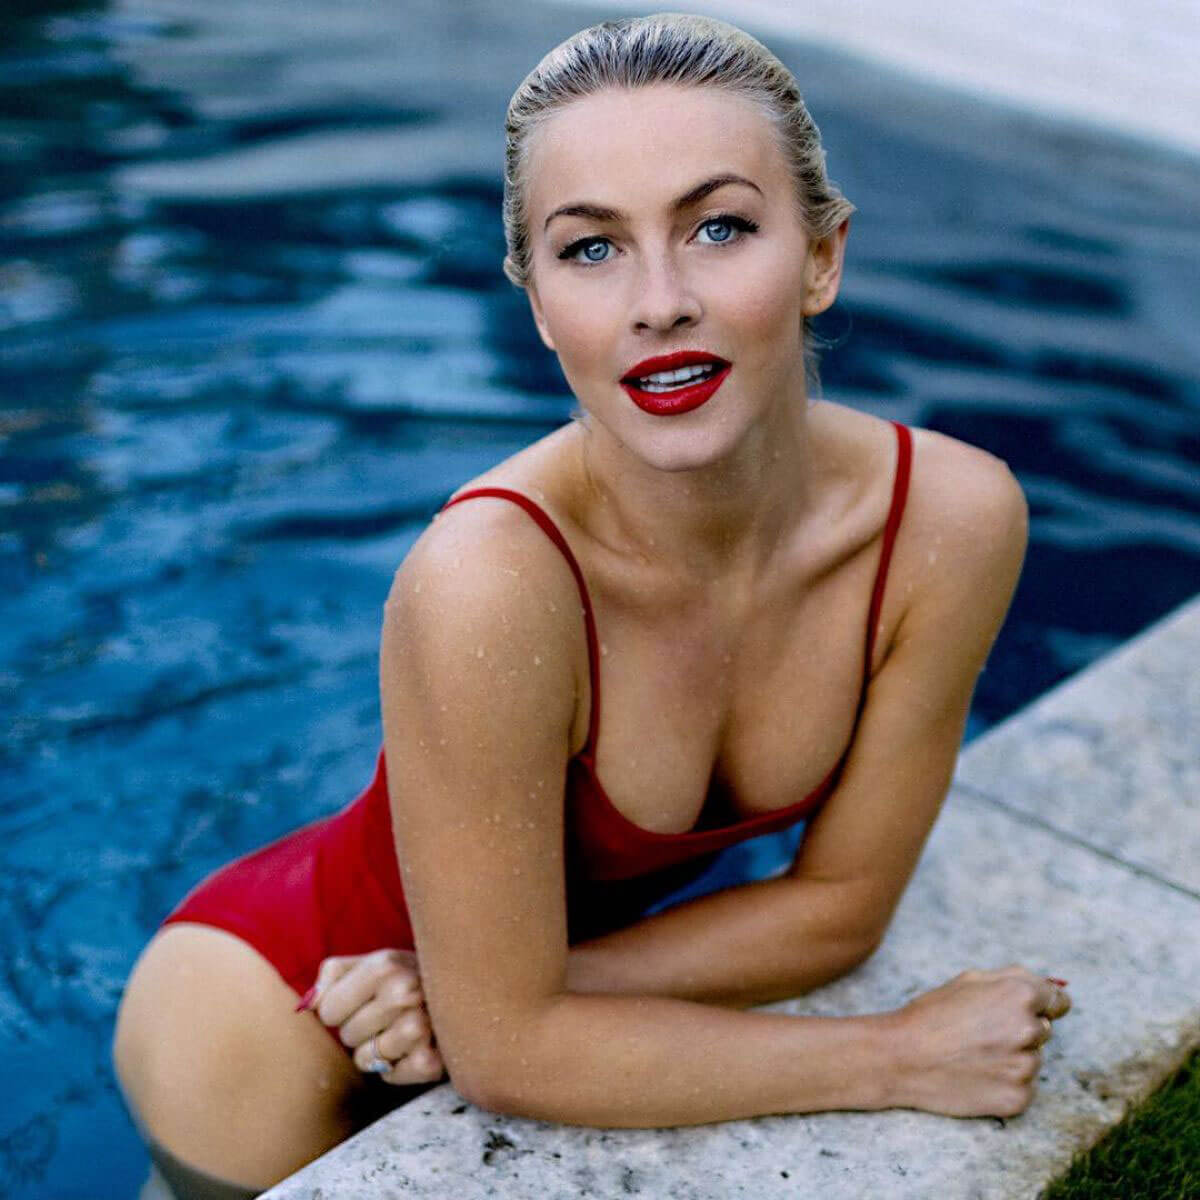 Julianne Hough Stills in Swimsuit at a Pool, 11/10/2017 Instagram Picture